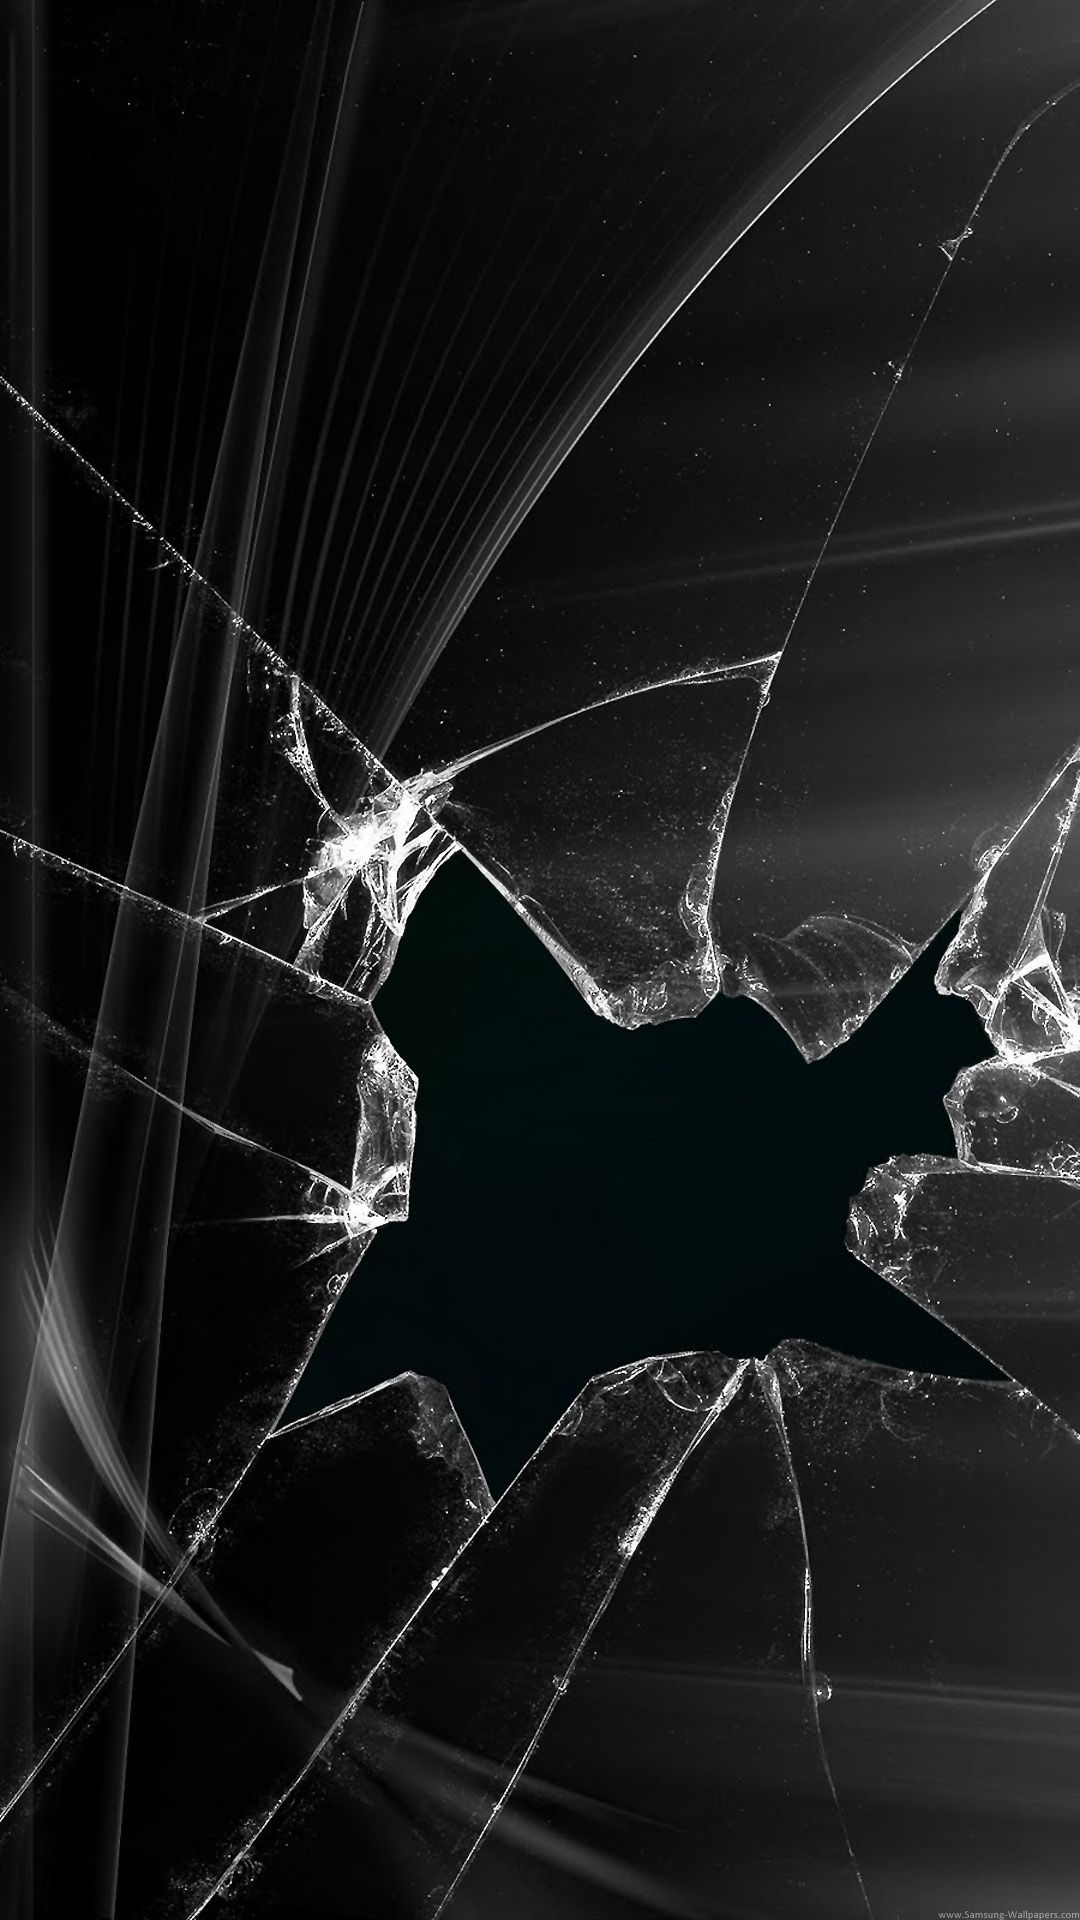 Broken screen wallpaper black abstract picture cracked screen broken screen wallpaper black abstract picture cracked screen voltagebd Gallery